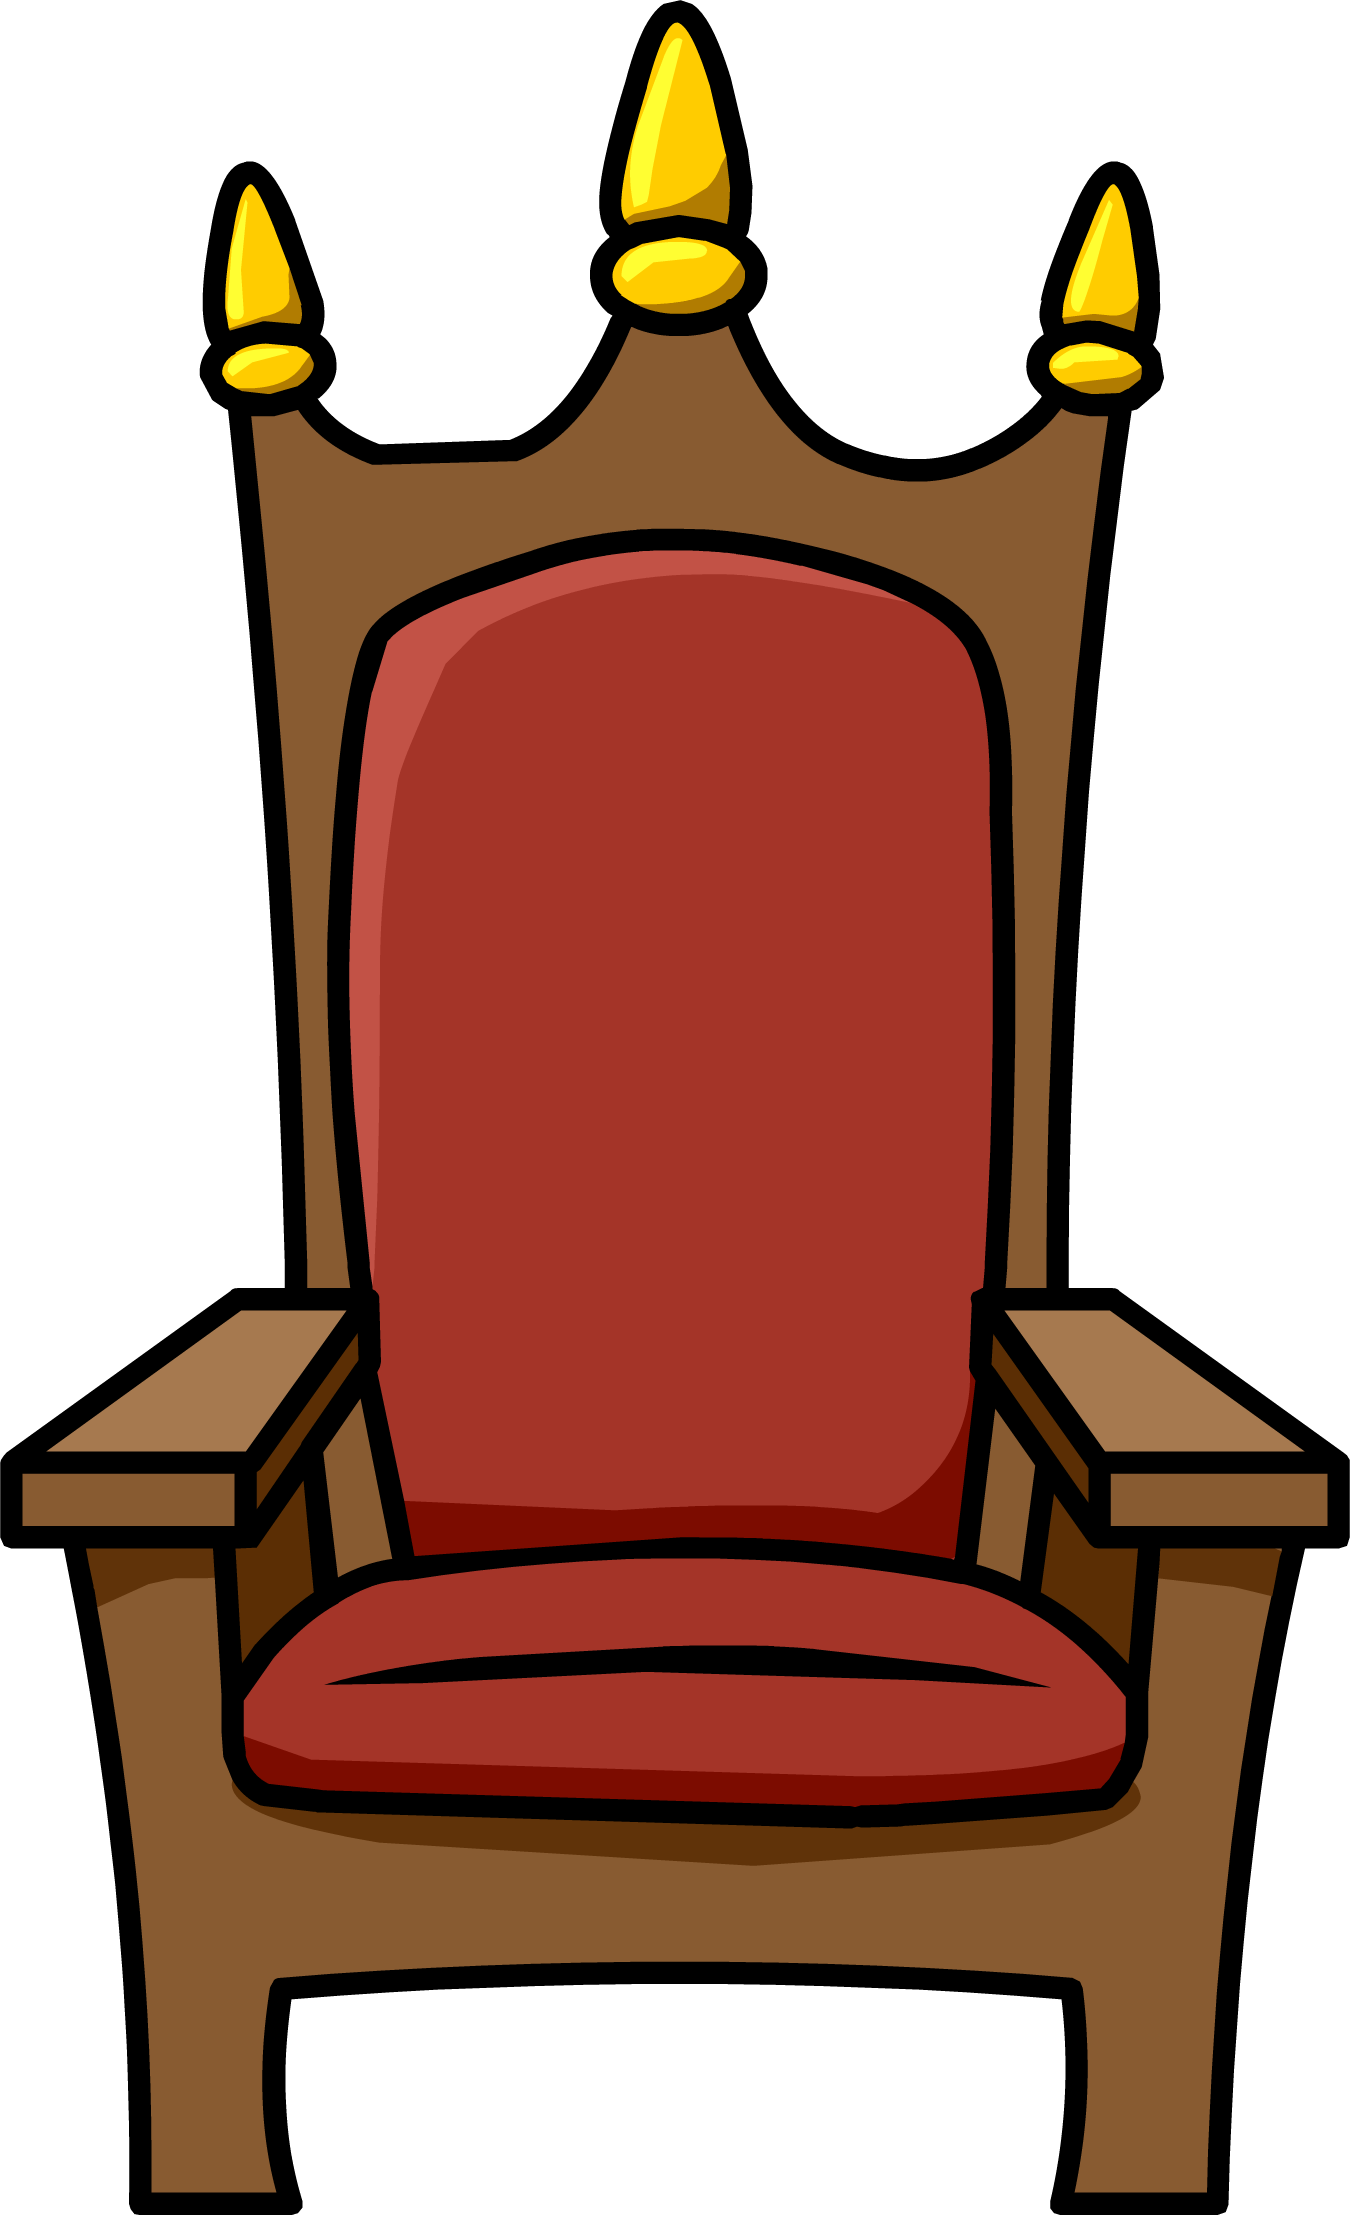 download Free Throne Cliparts